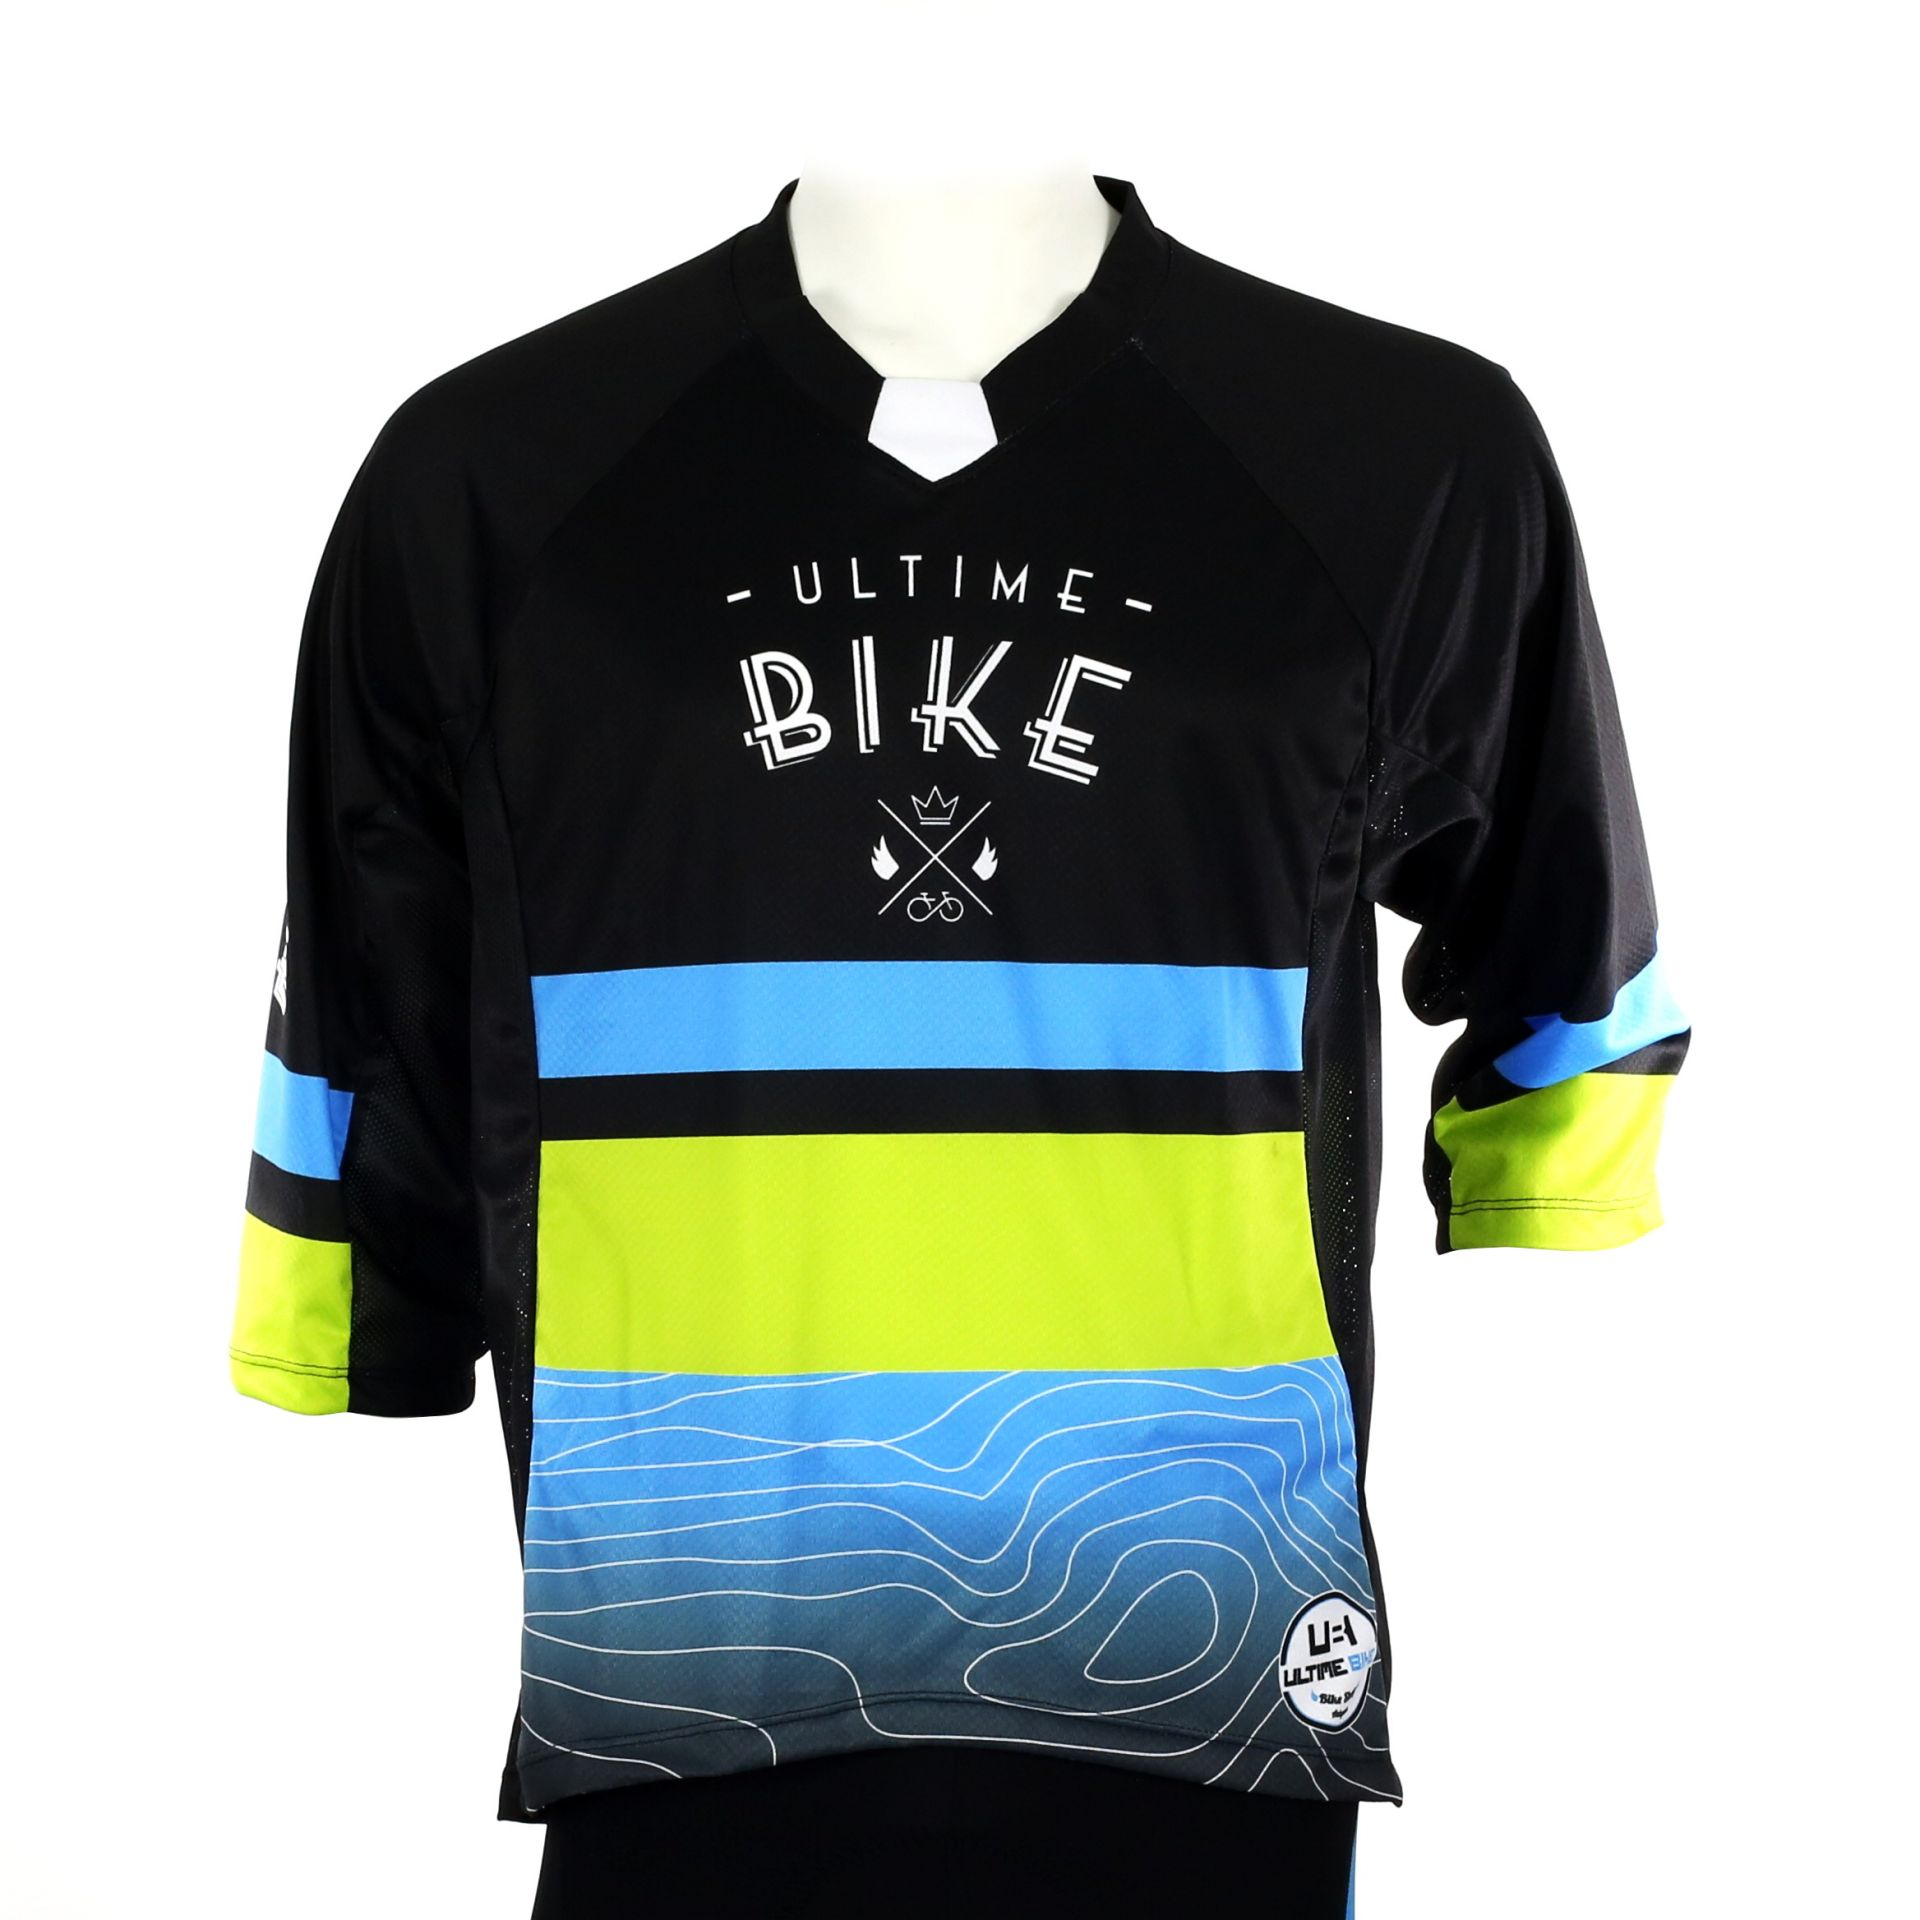 Maillot UltimeBike Enduro by TACTIC Manches 3/4 - XL